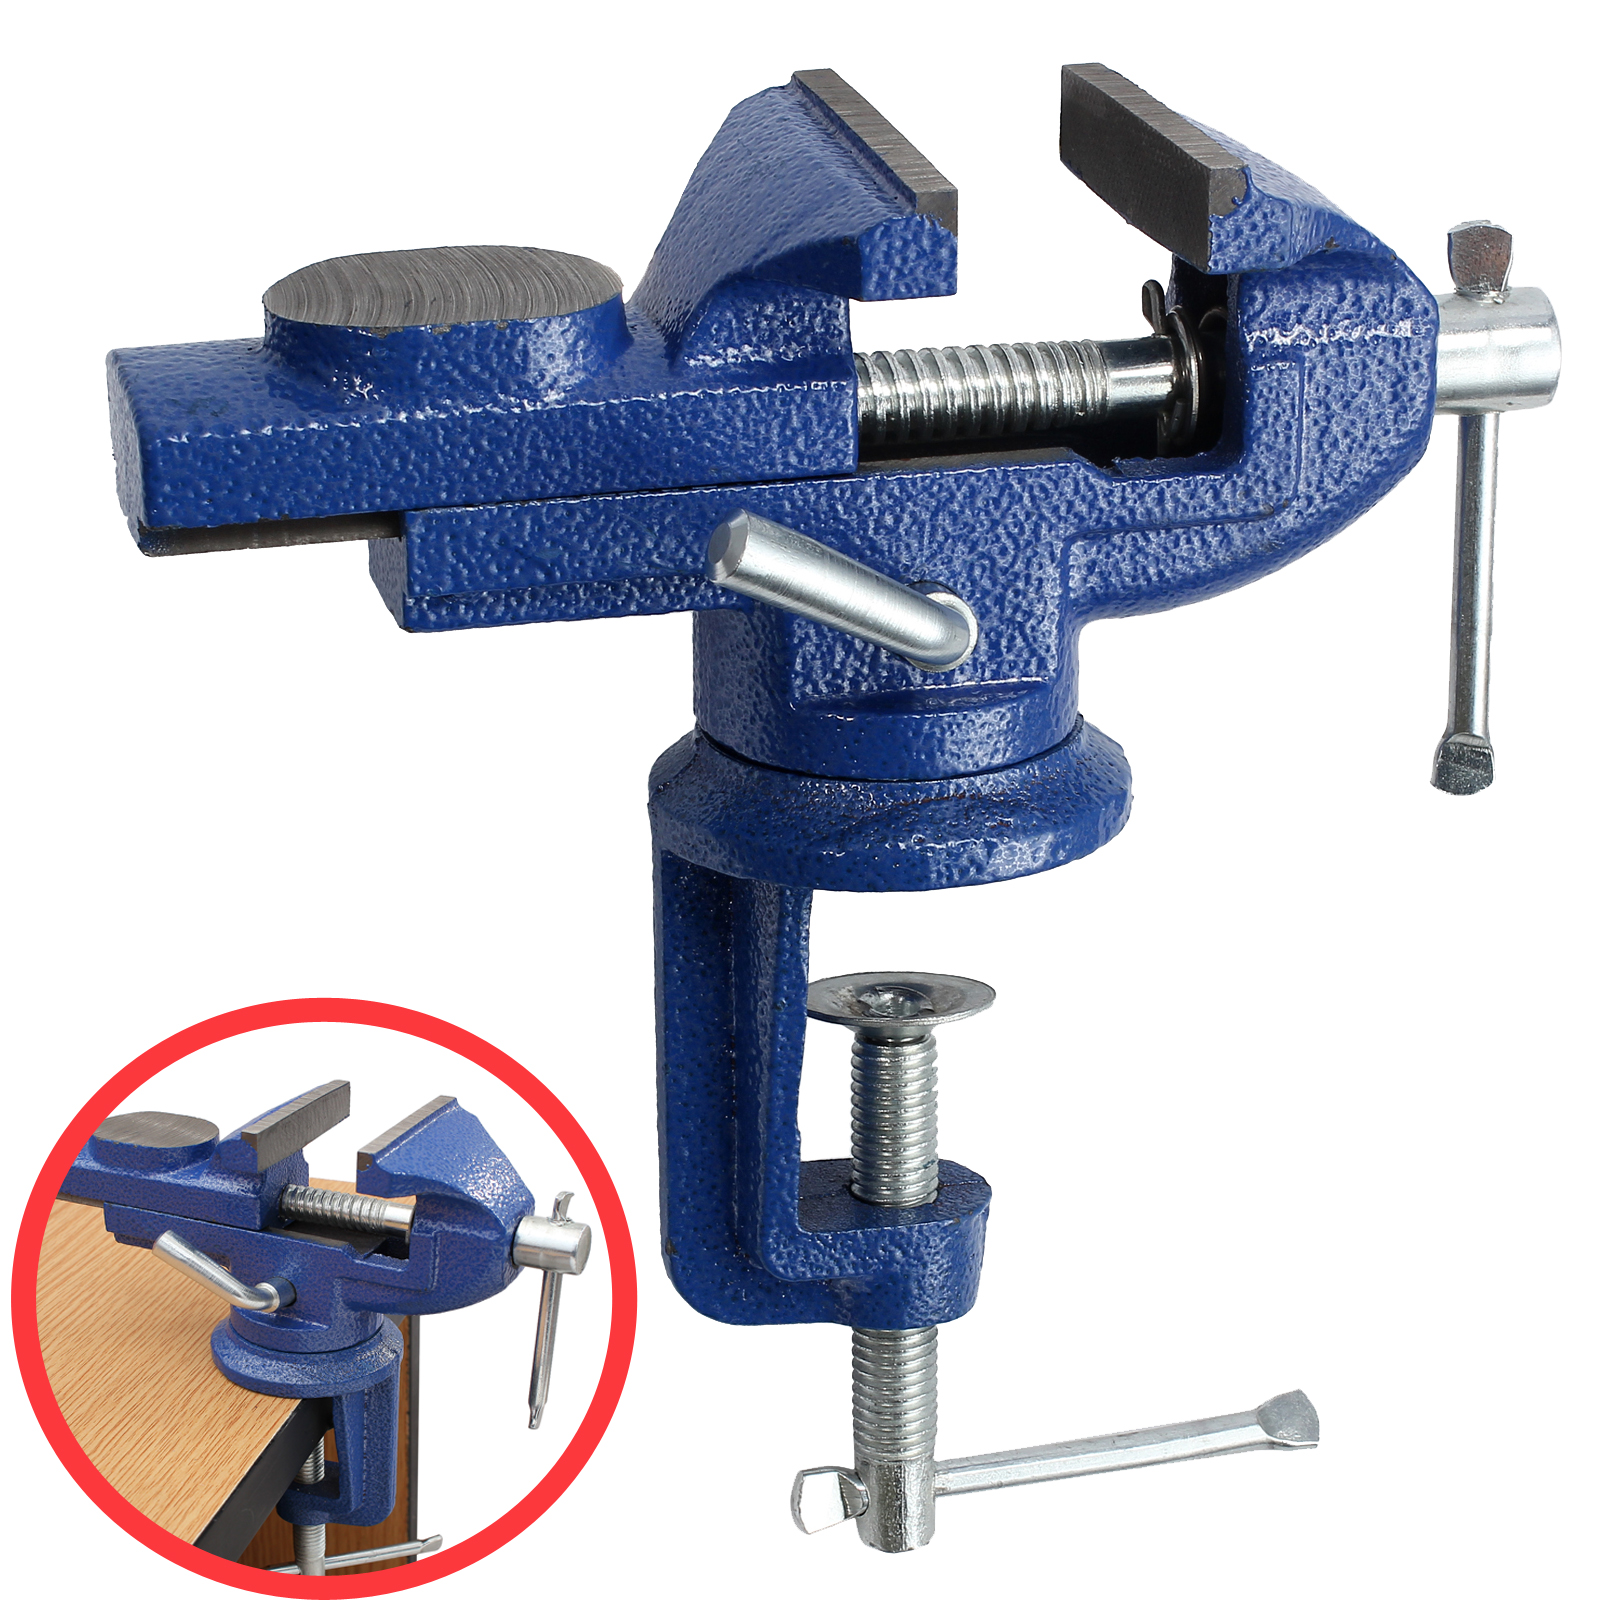 60mm Mini Bench Vice Swivel Clamp Base Portable Table Vice With